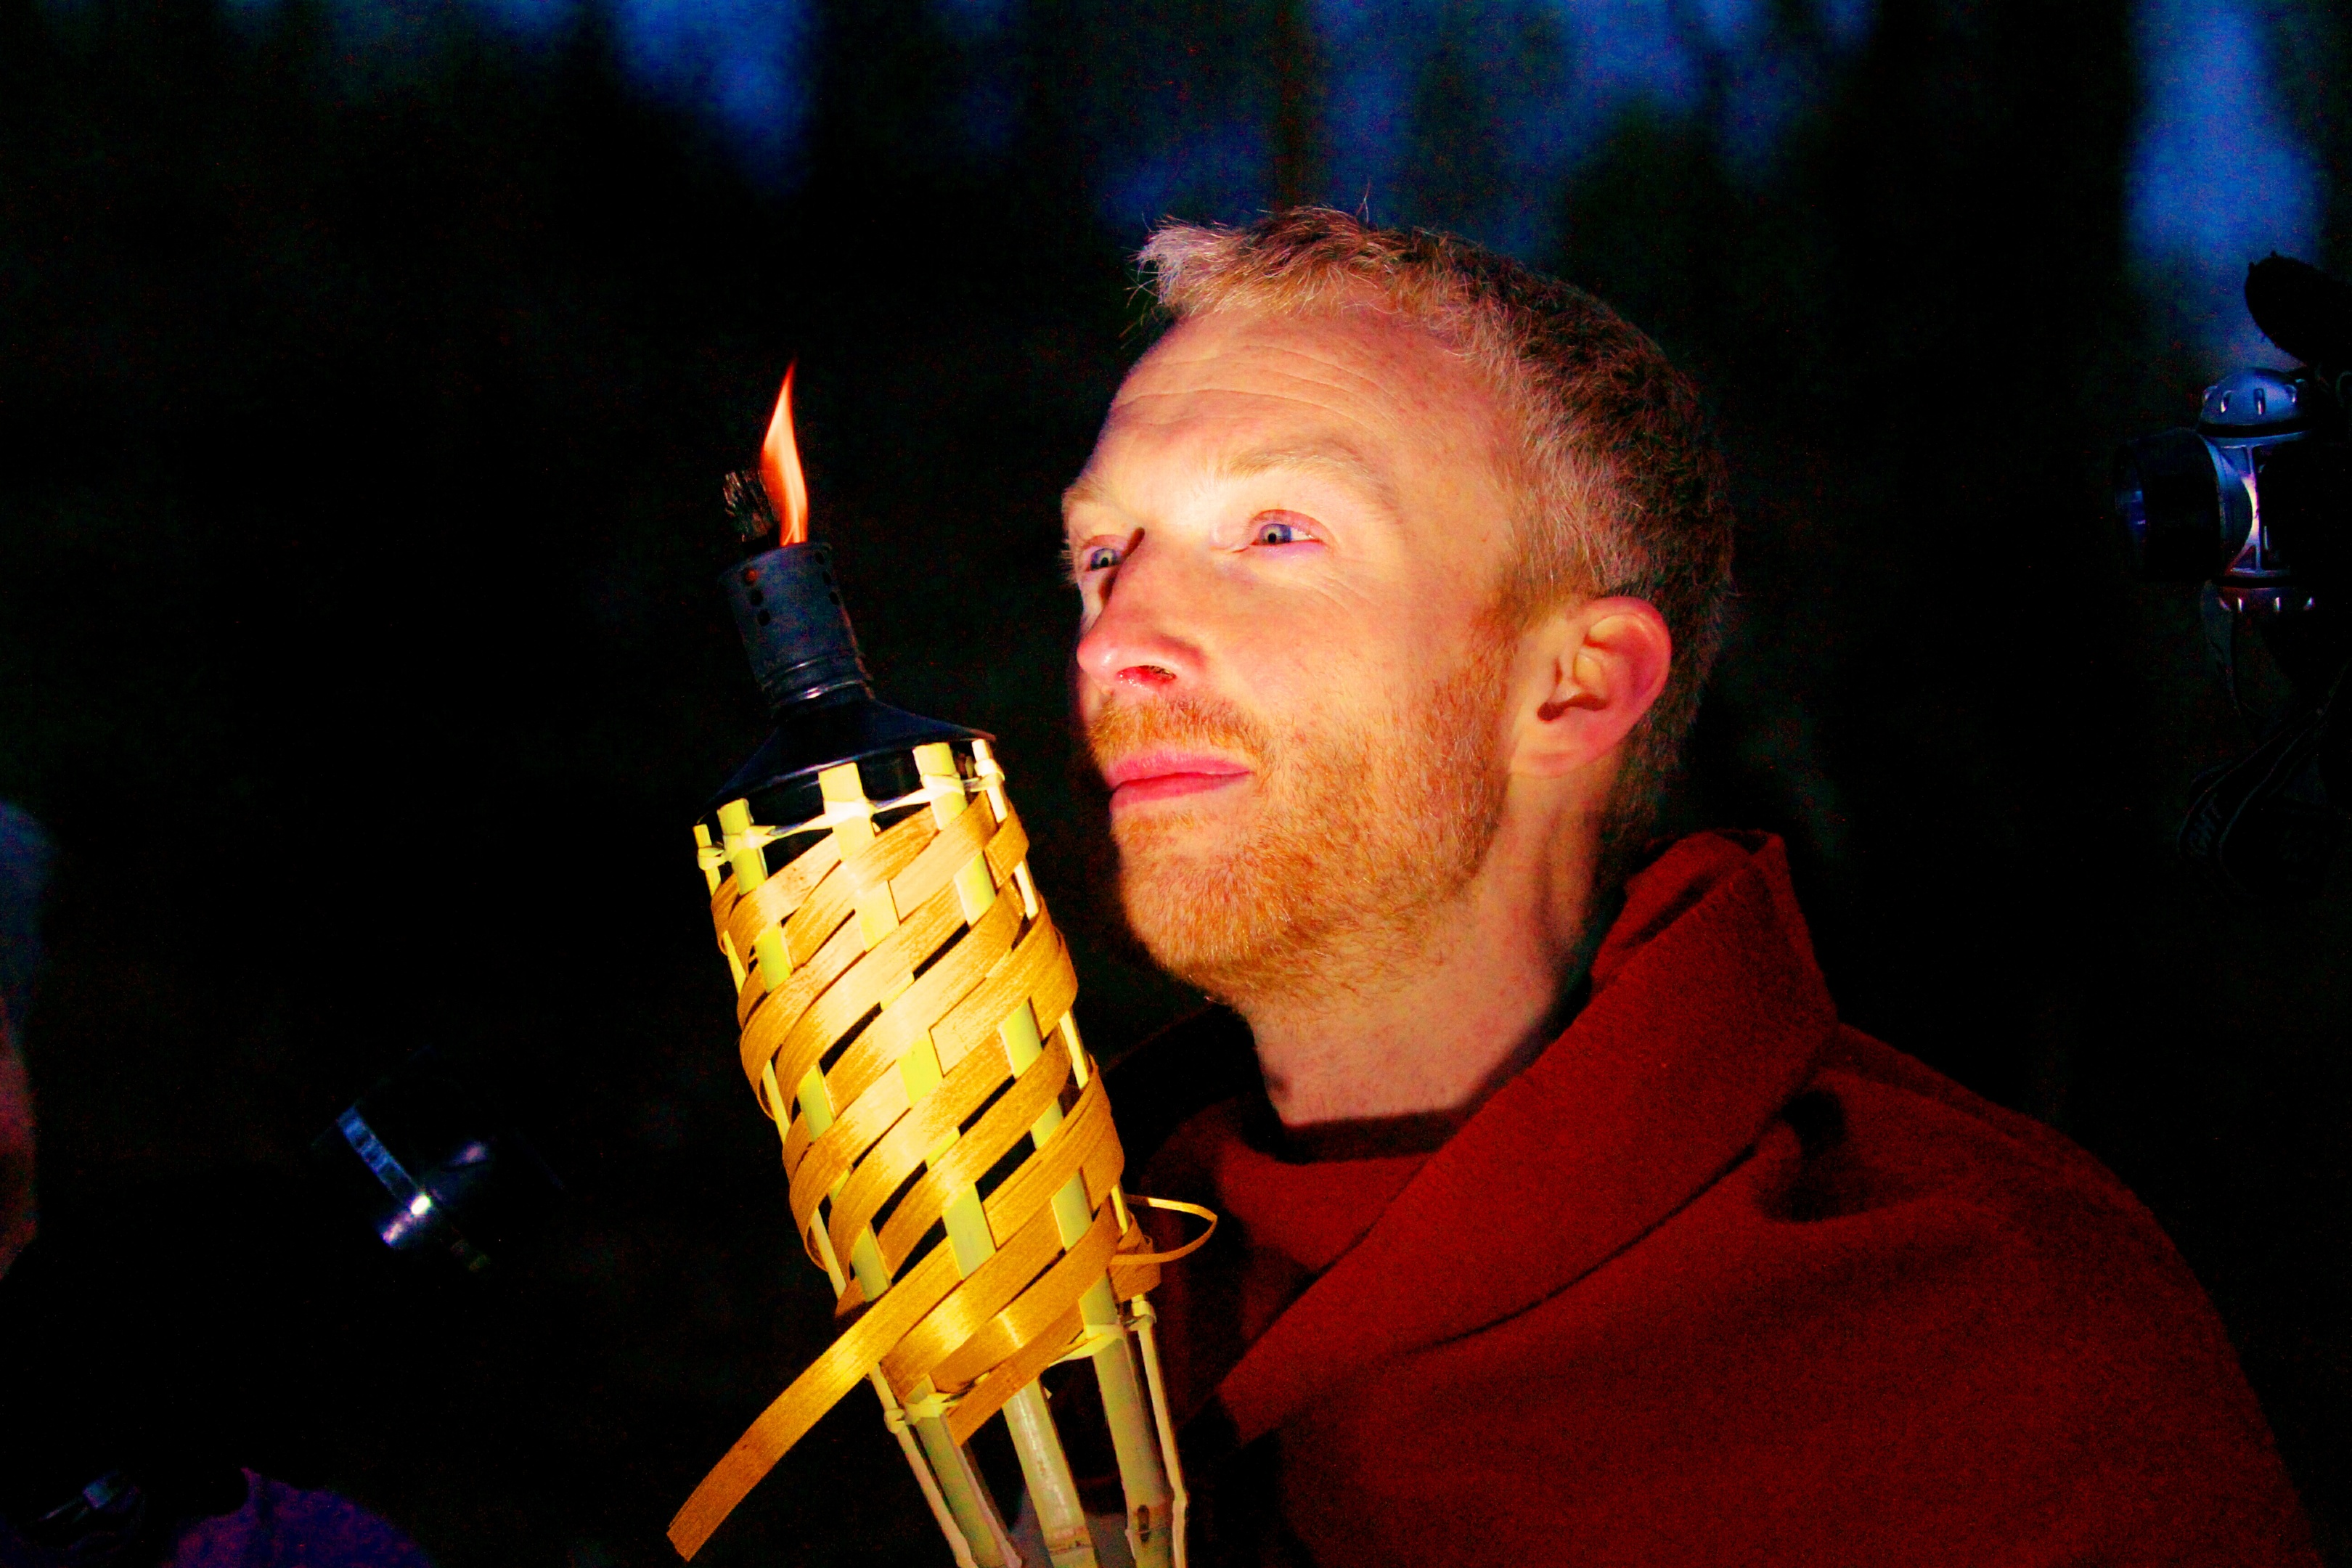 Gavin Lindsay of Perth and Kinross Heritage Trust dons Iron Age garb to lead a torchlight procession up Moncrieffe Hill.